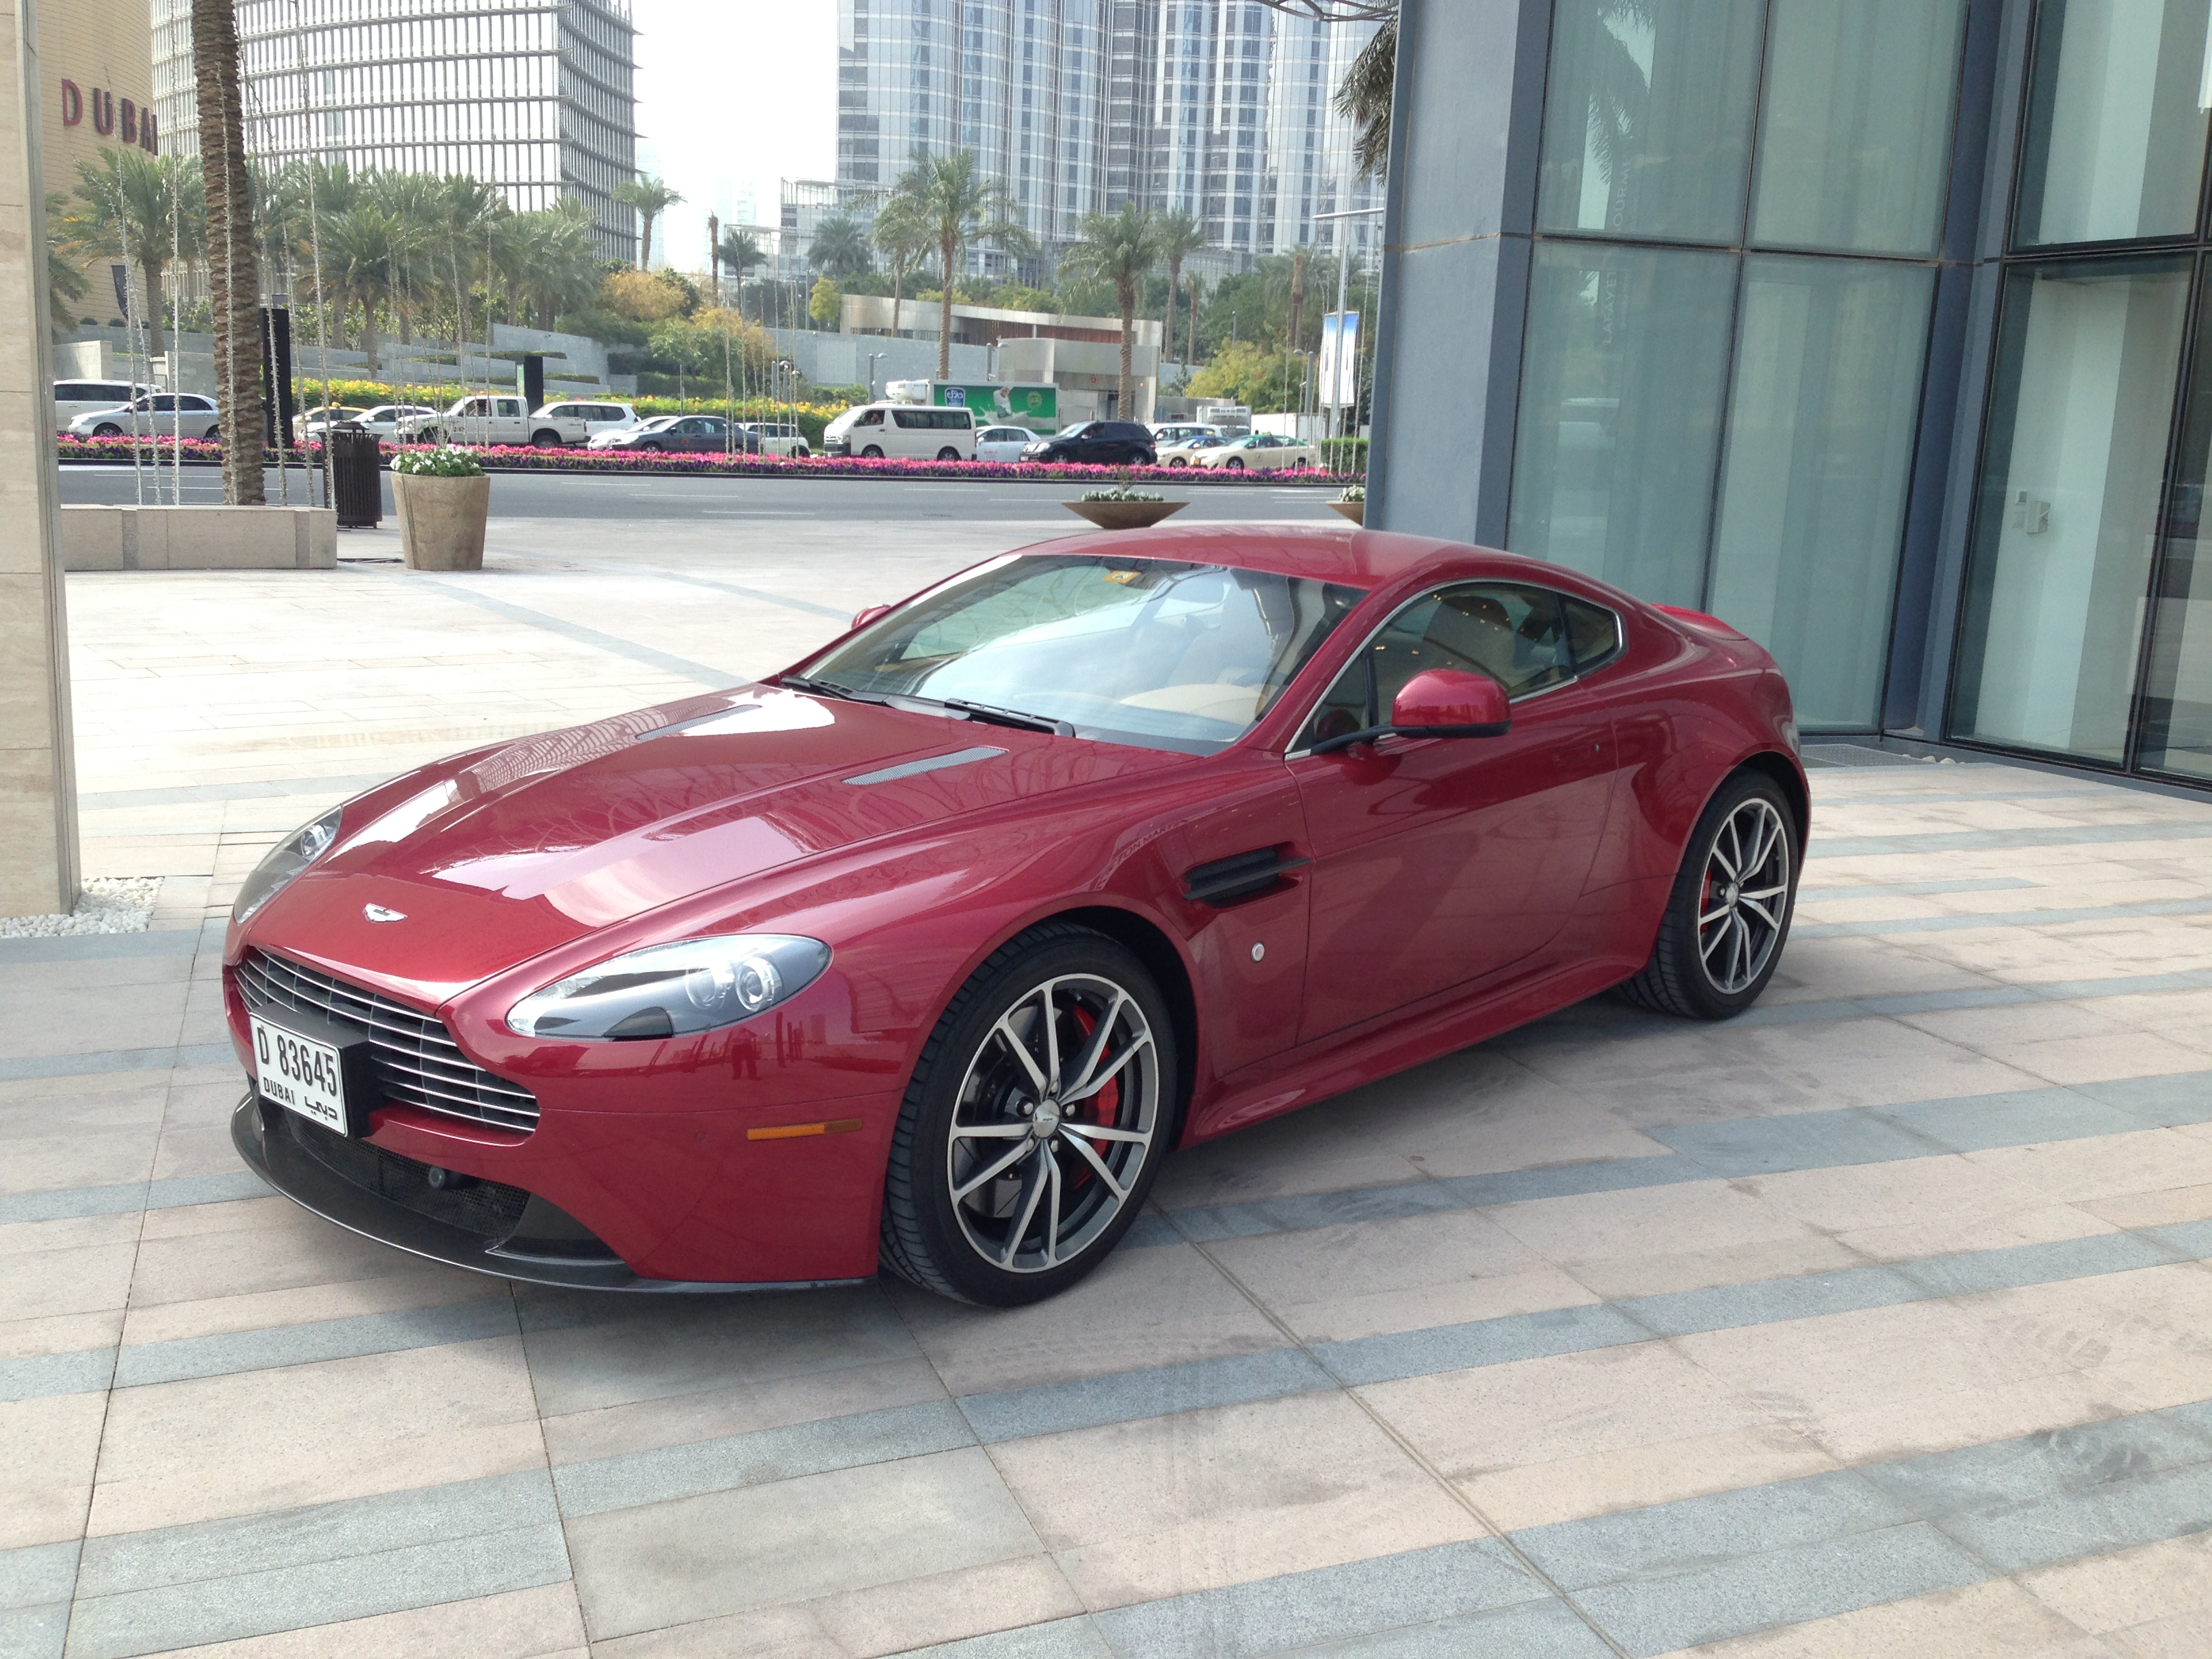 file aston martin v8 vantage s jpg wikimedia commons. Cars Review. Best American Auto & Cars Review